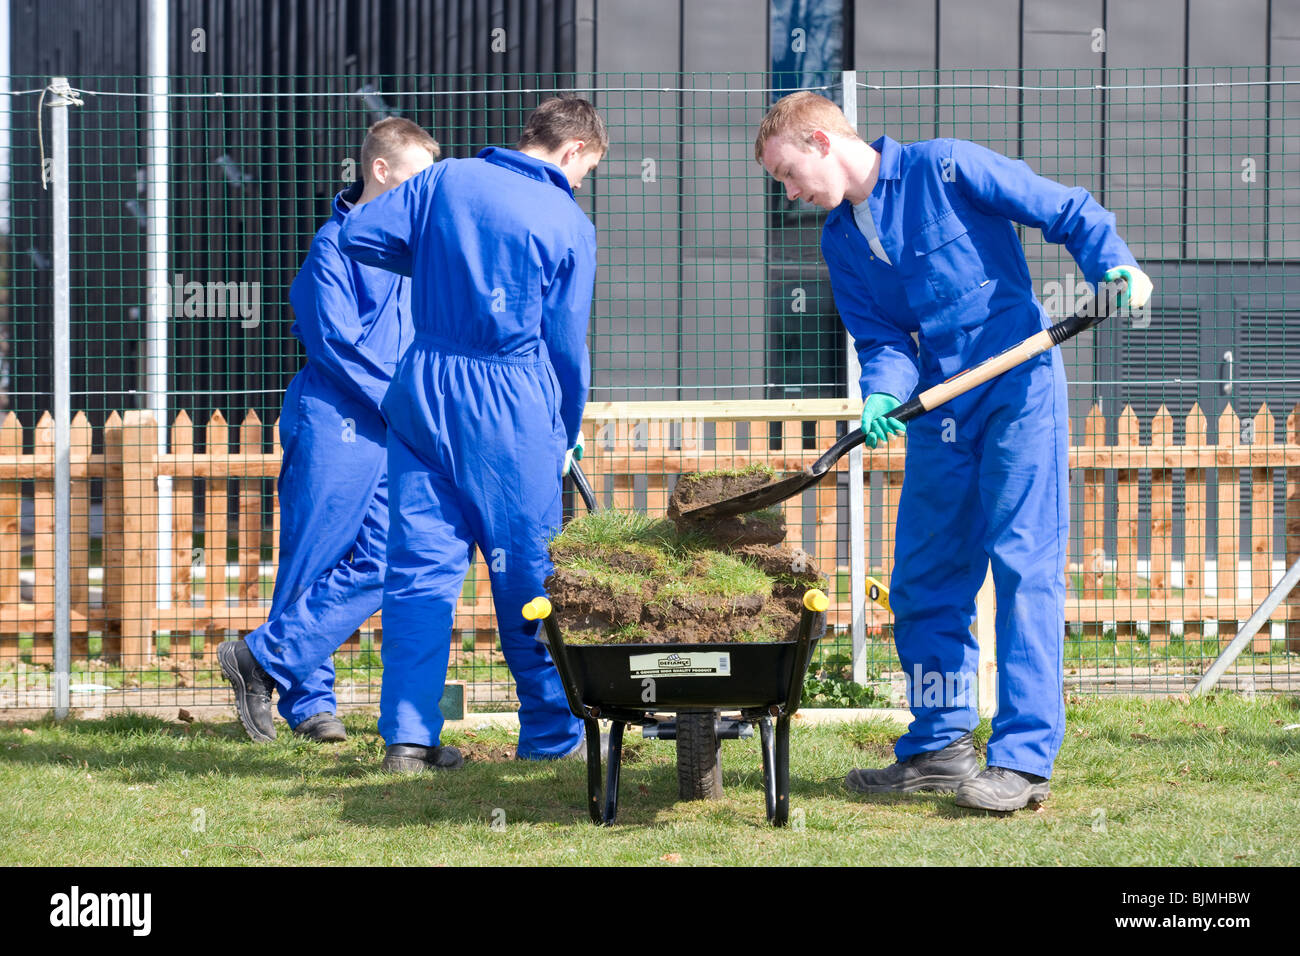 Students on a hard landscaping course Stock Photo